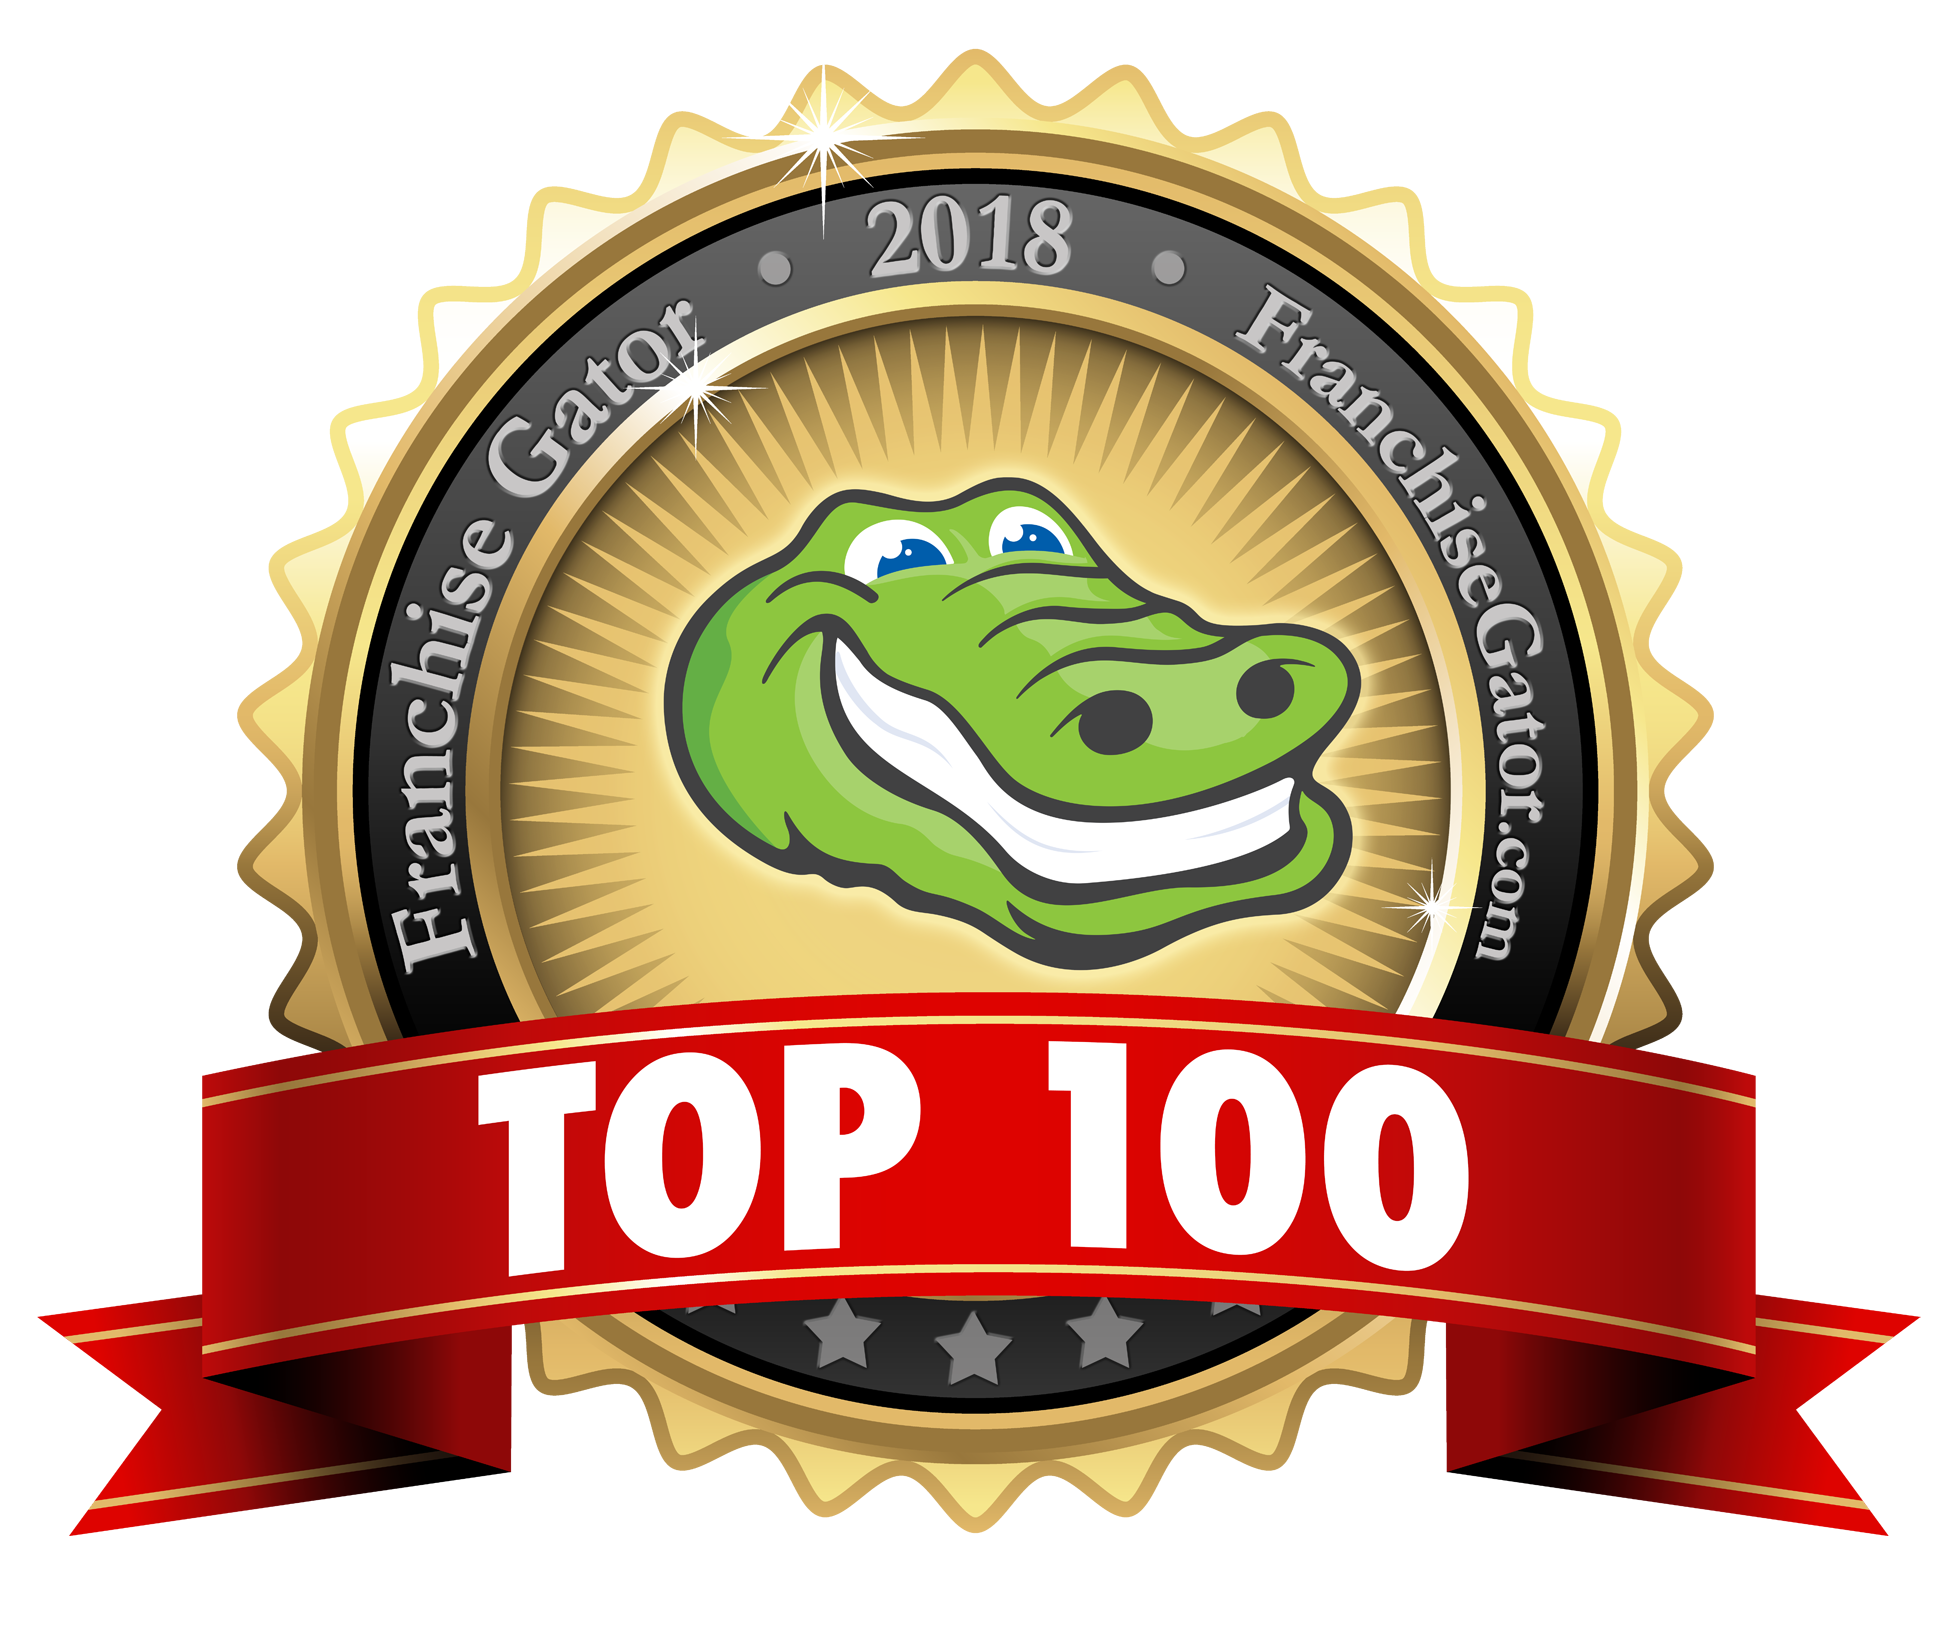 Franchise Gator Top 100 2018